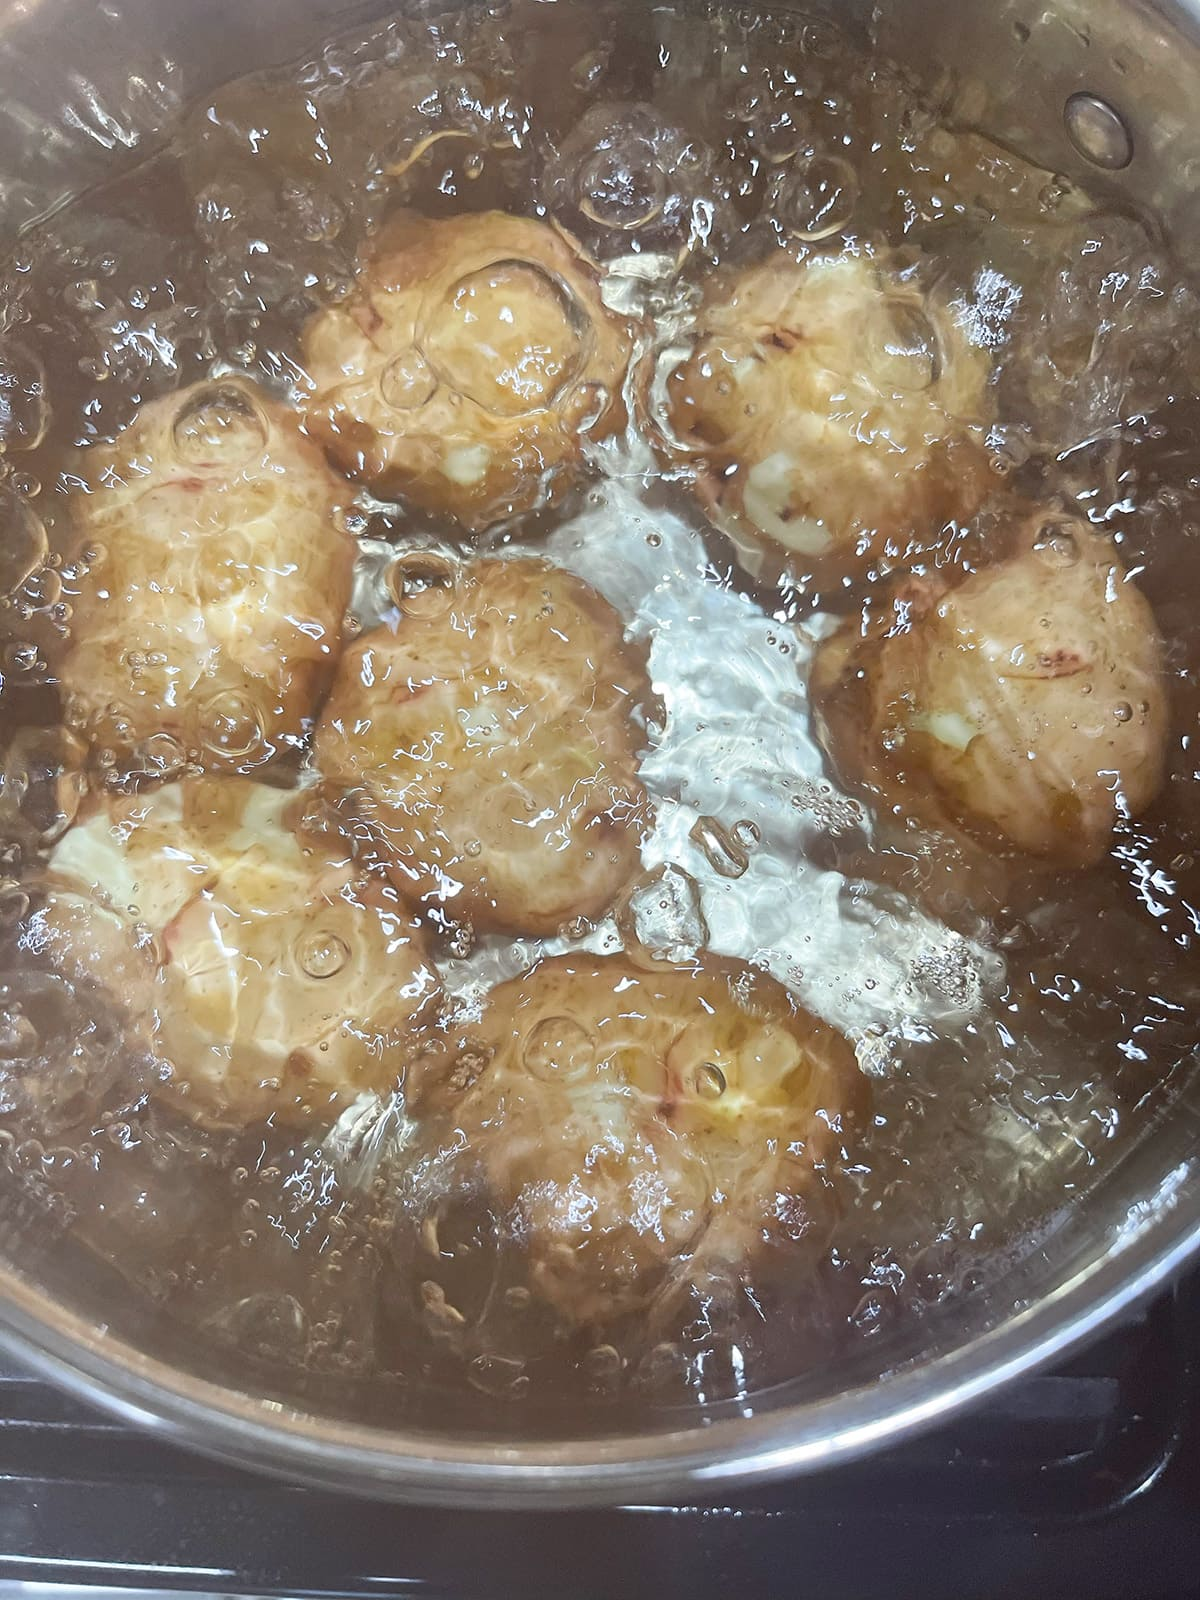 boiled potatoes in a pot of water